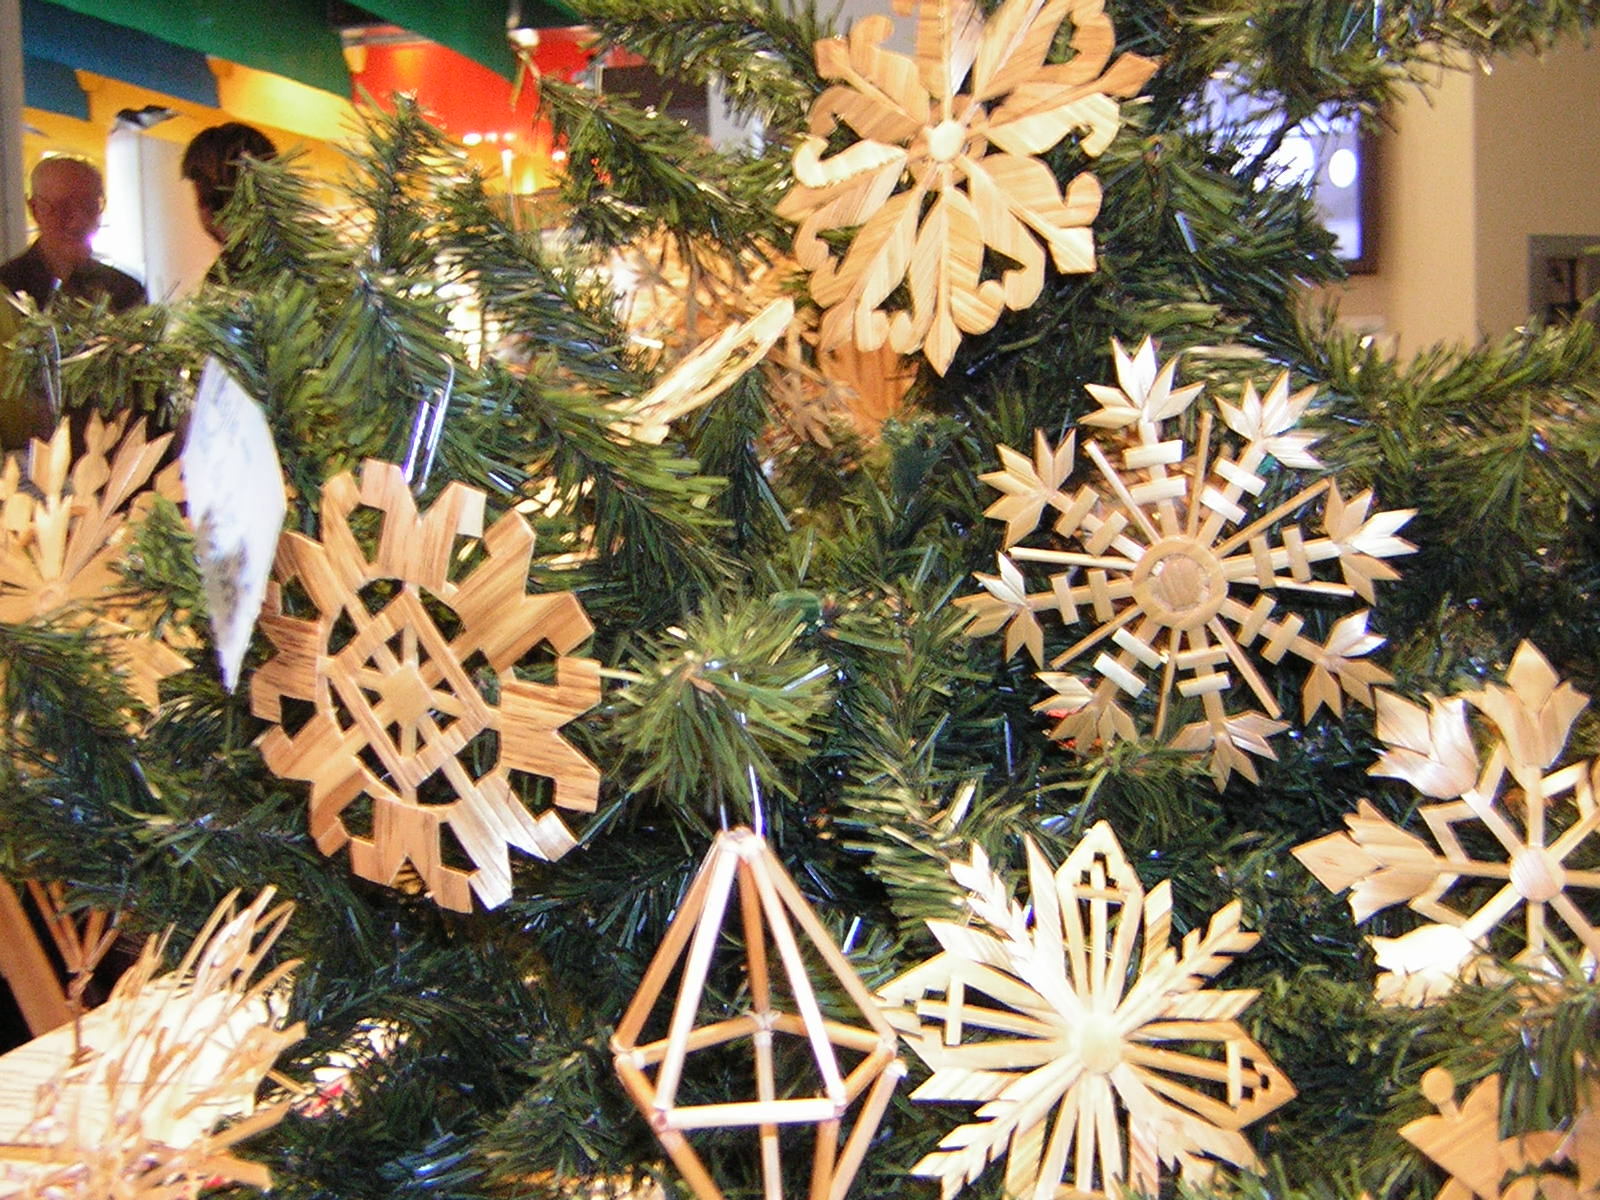 South australian lithuanian history straw decorations for Australia christmas decoration